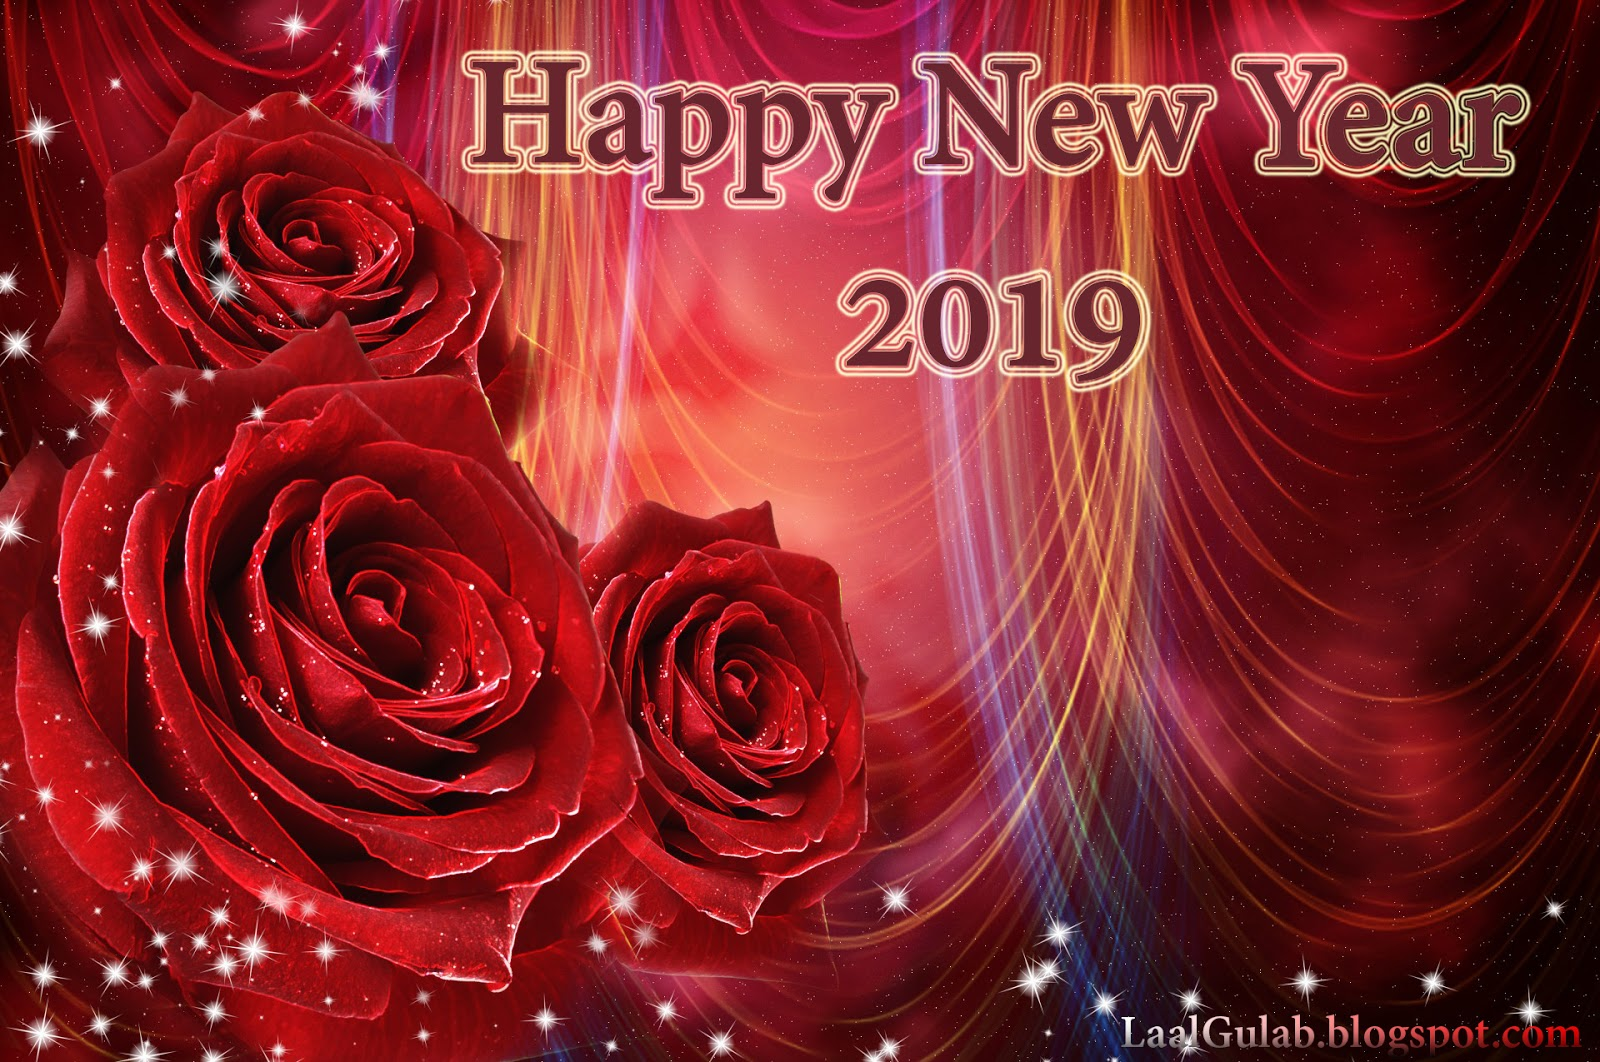 Happy New Year 2019 Images Download Hd